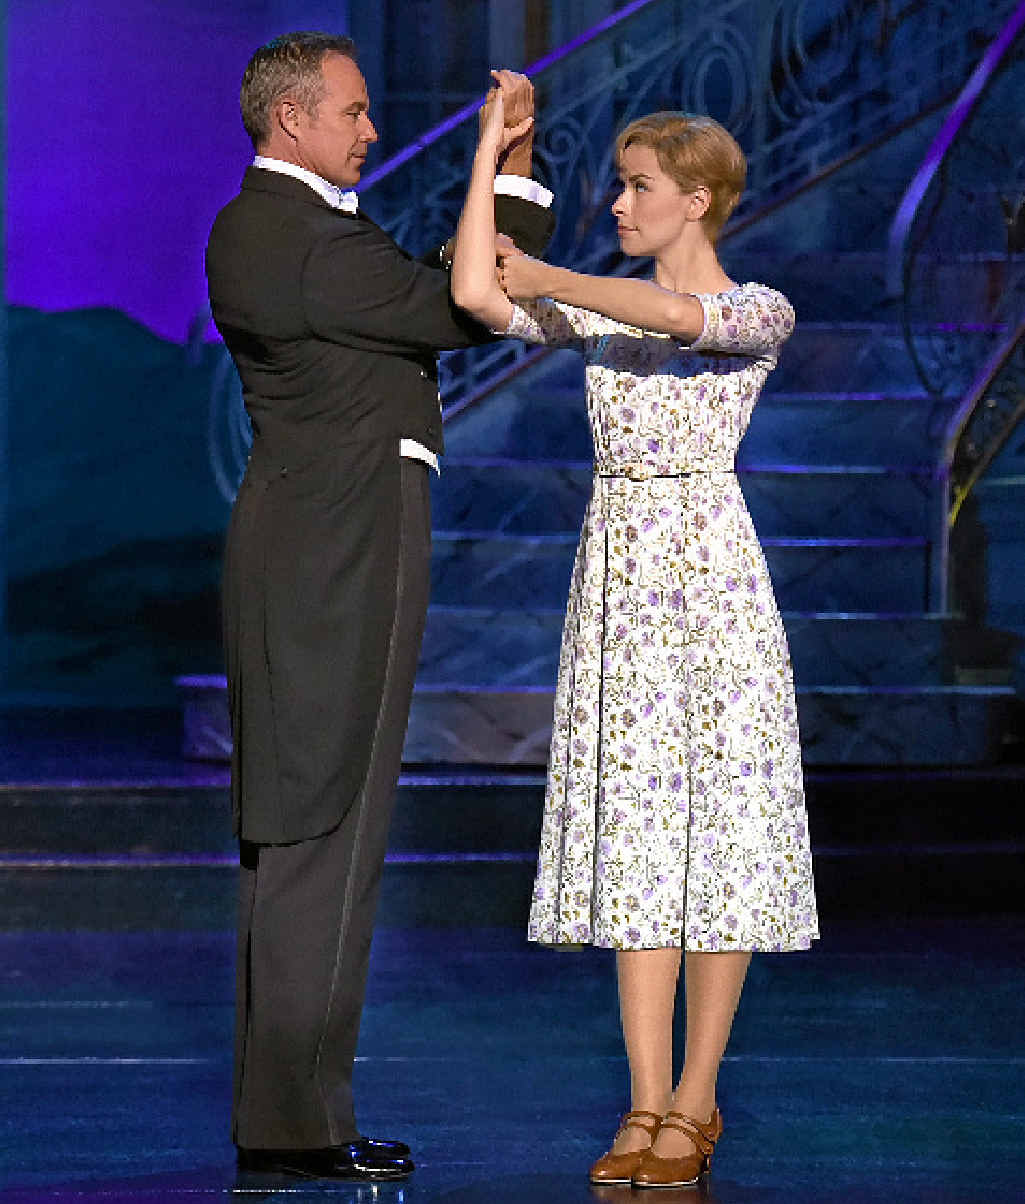 Cameron Daddo and Amy Lehpamer dance in The Sound of Music stage production.